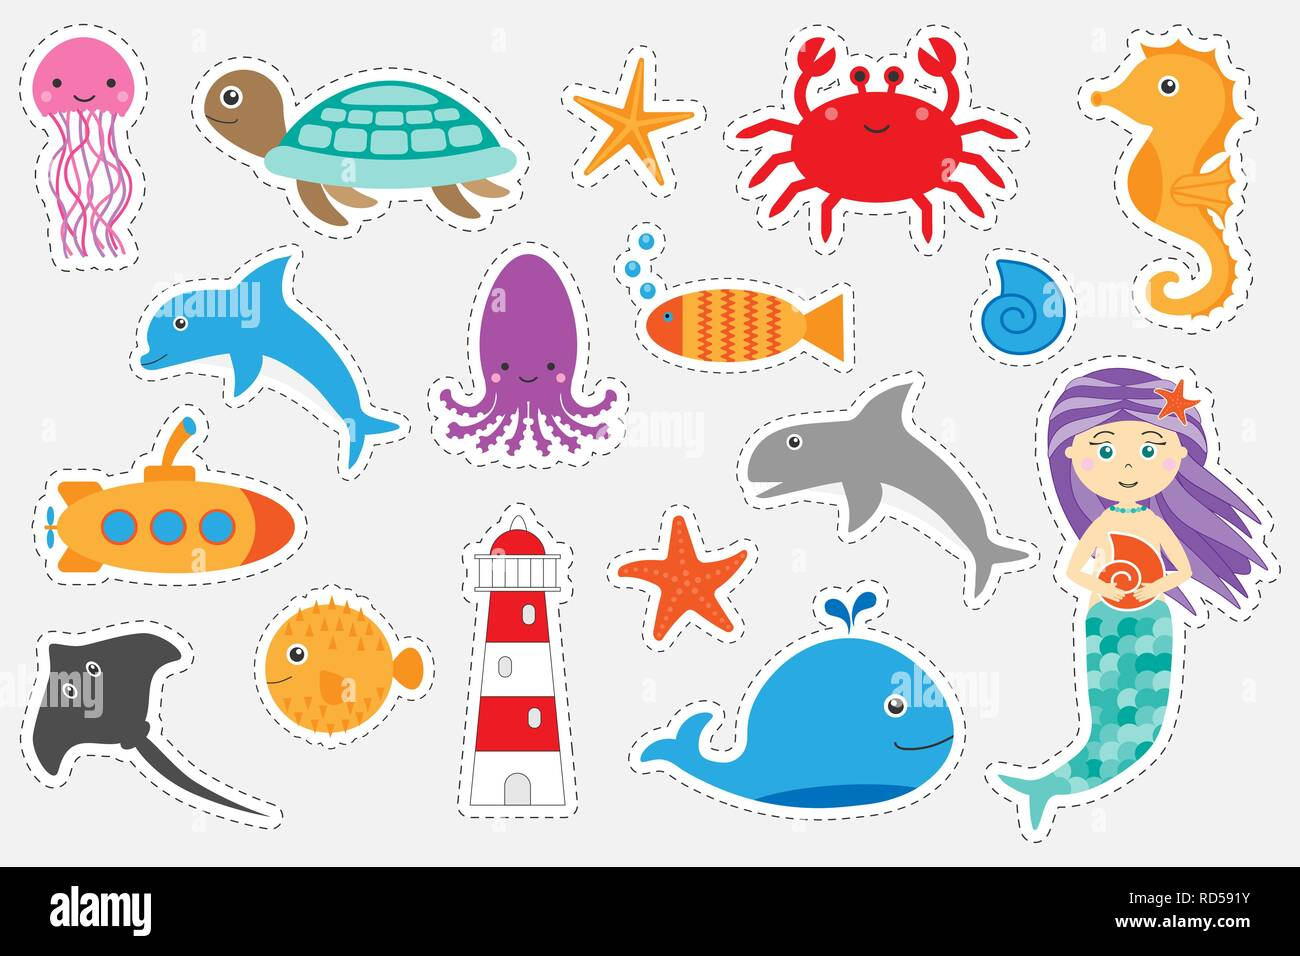 Different Colorful Pictures Of Ocean Animals For Children